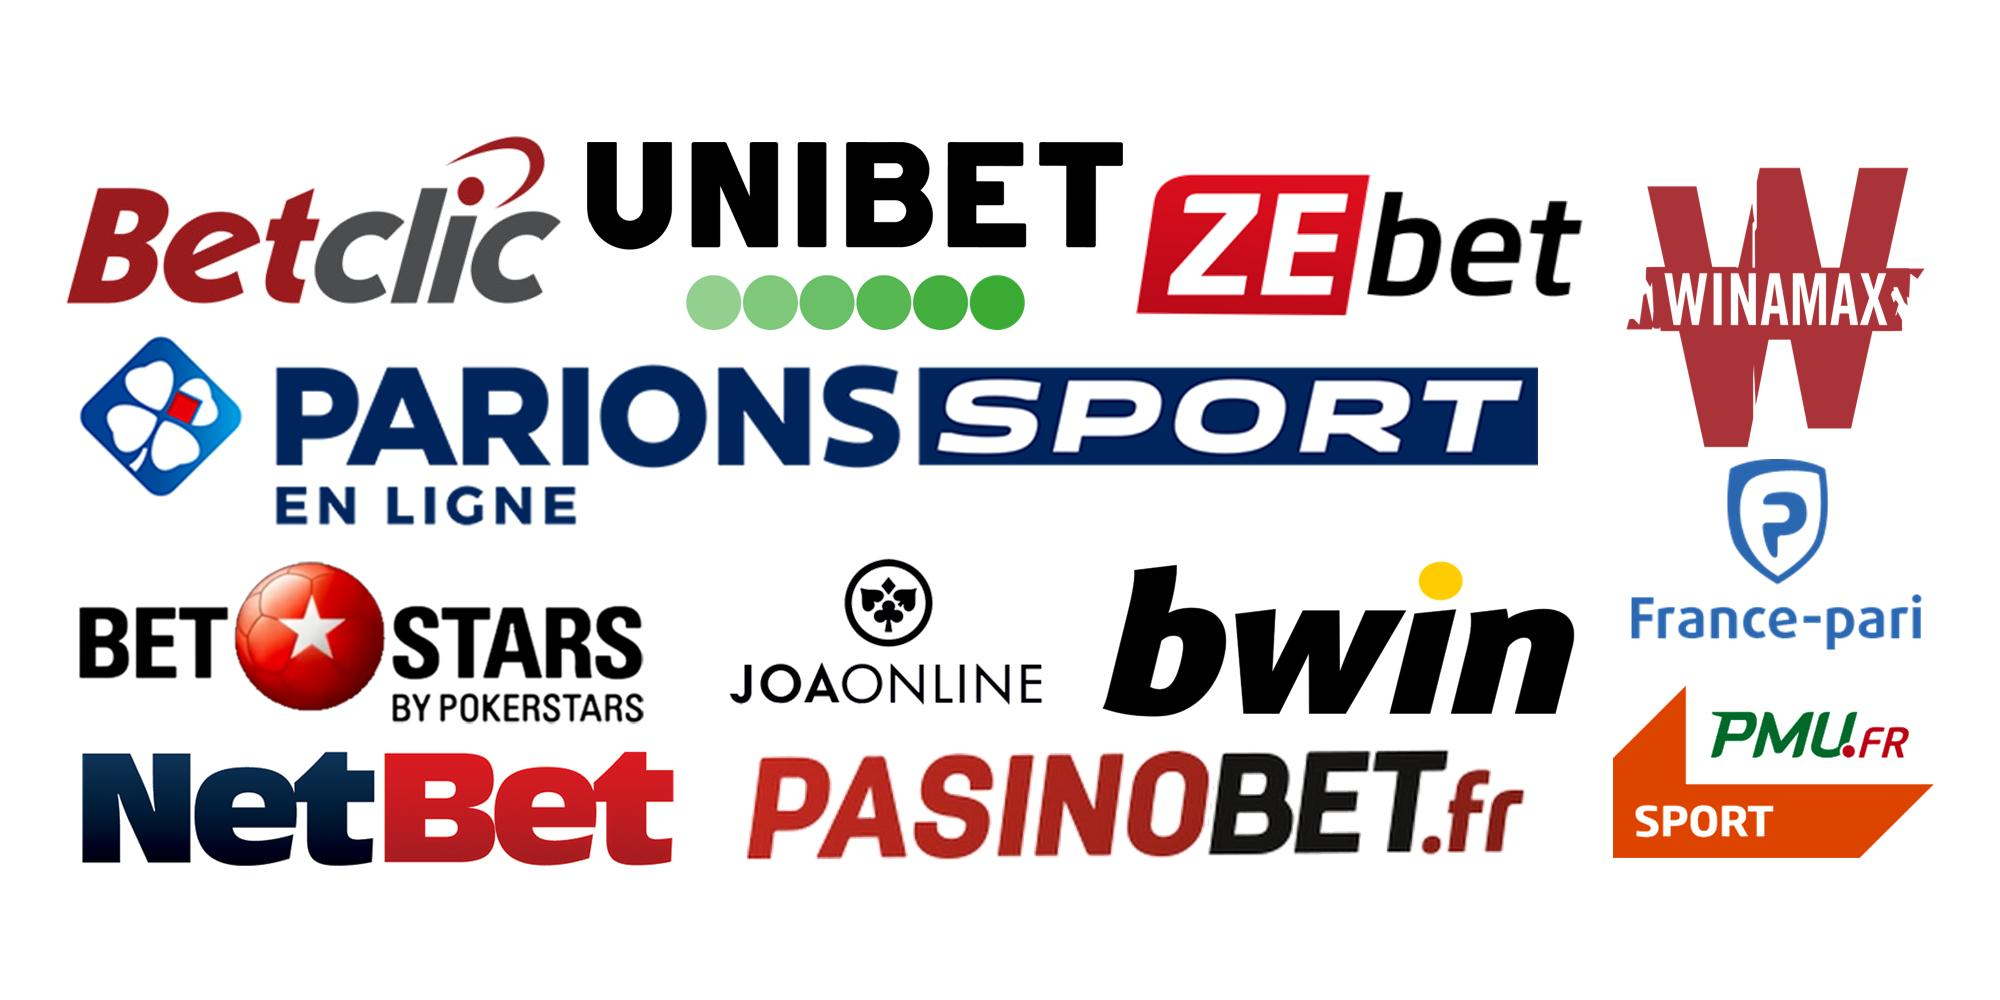 Sports betting lines docs euro 2021 golden boot betting sites